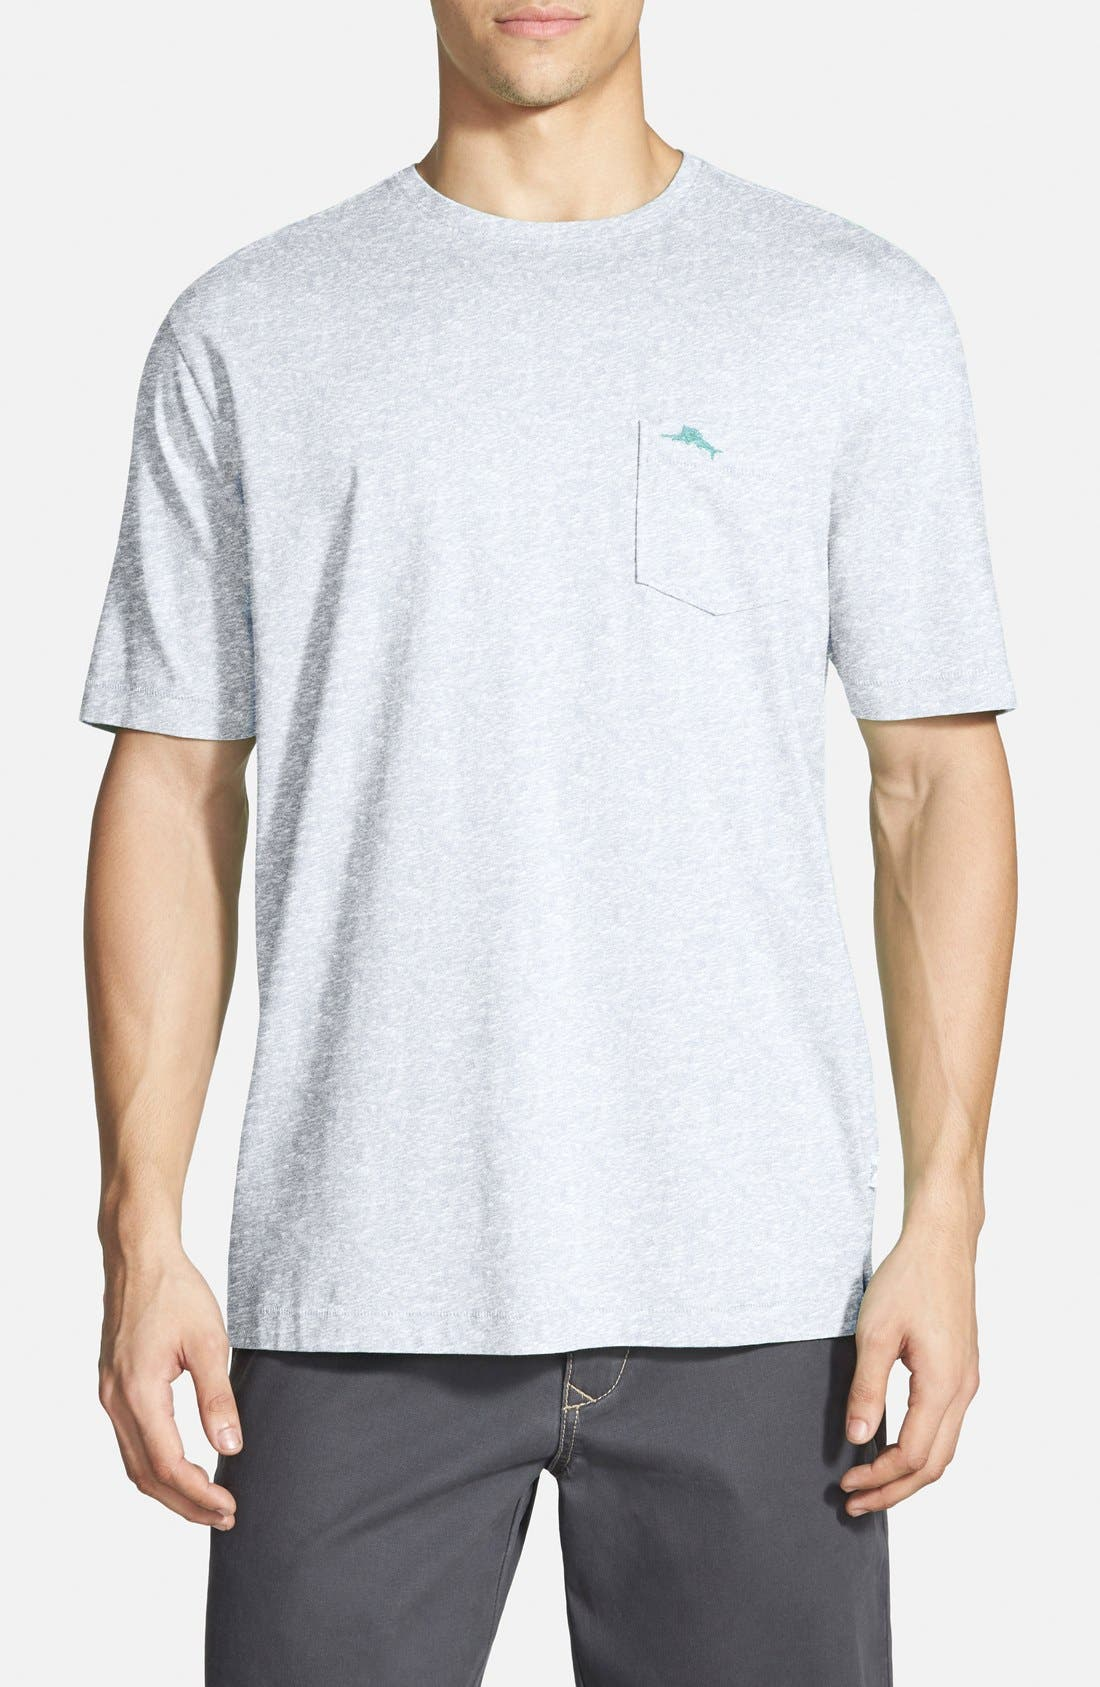 Tommy Bahama 'New Bali Sky' Pima Cotton Pocket T-Shirt (Big & Tall)